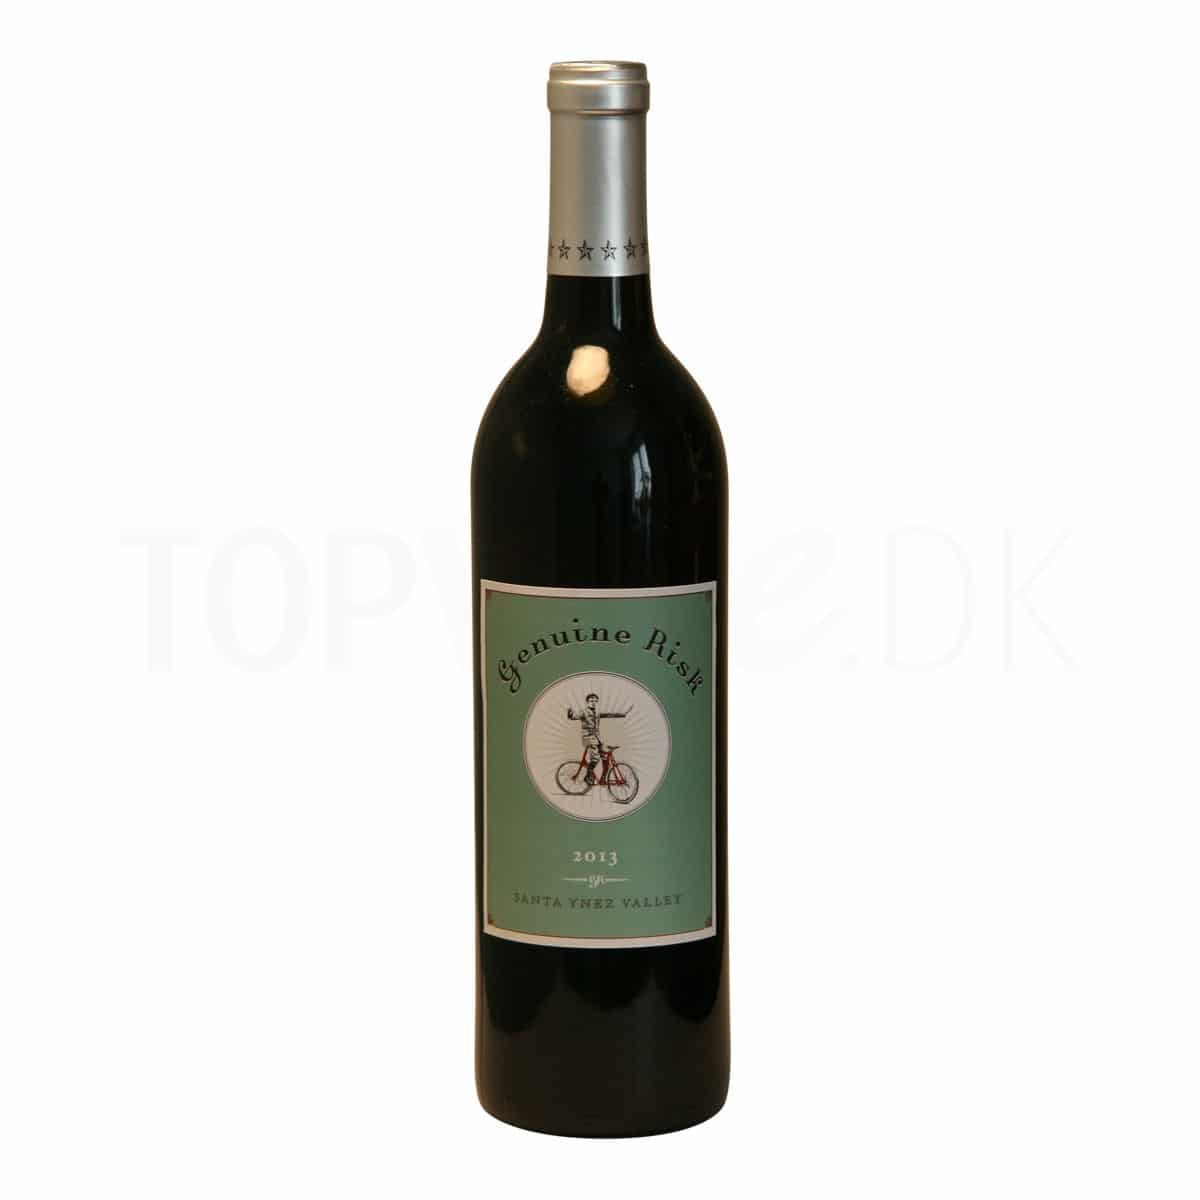 Topvine Black Sheep Finds - Genuine Risk Santa Ynez Valley (Napa) 2013